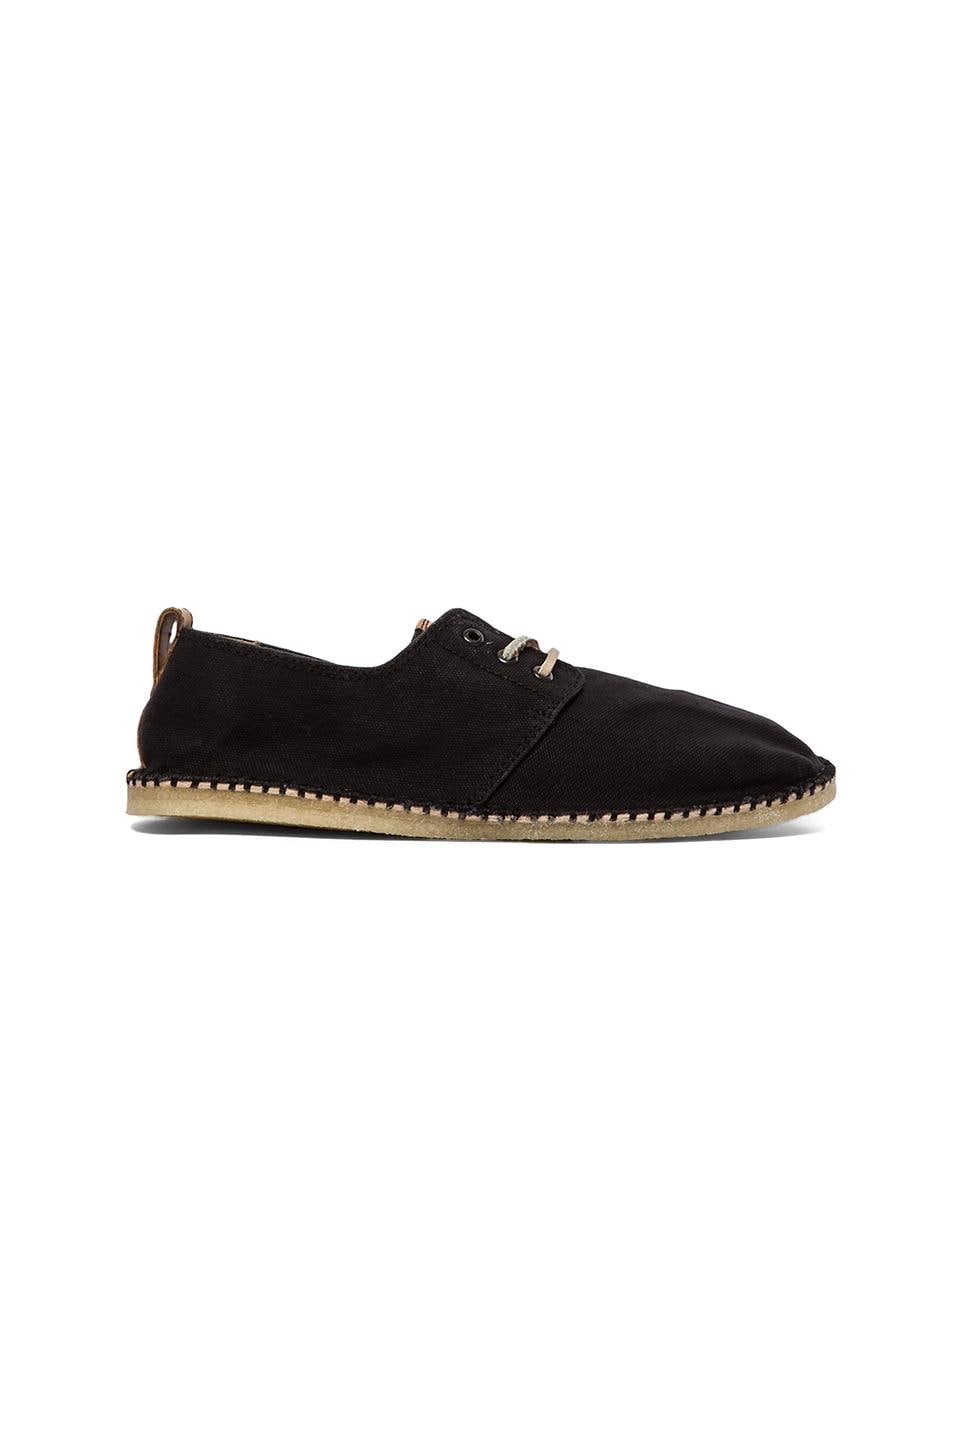 Clarks Originals Pikko Solo in Black